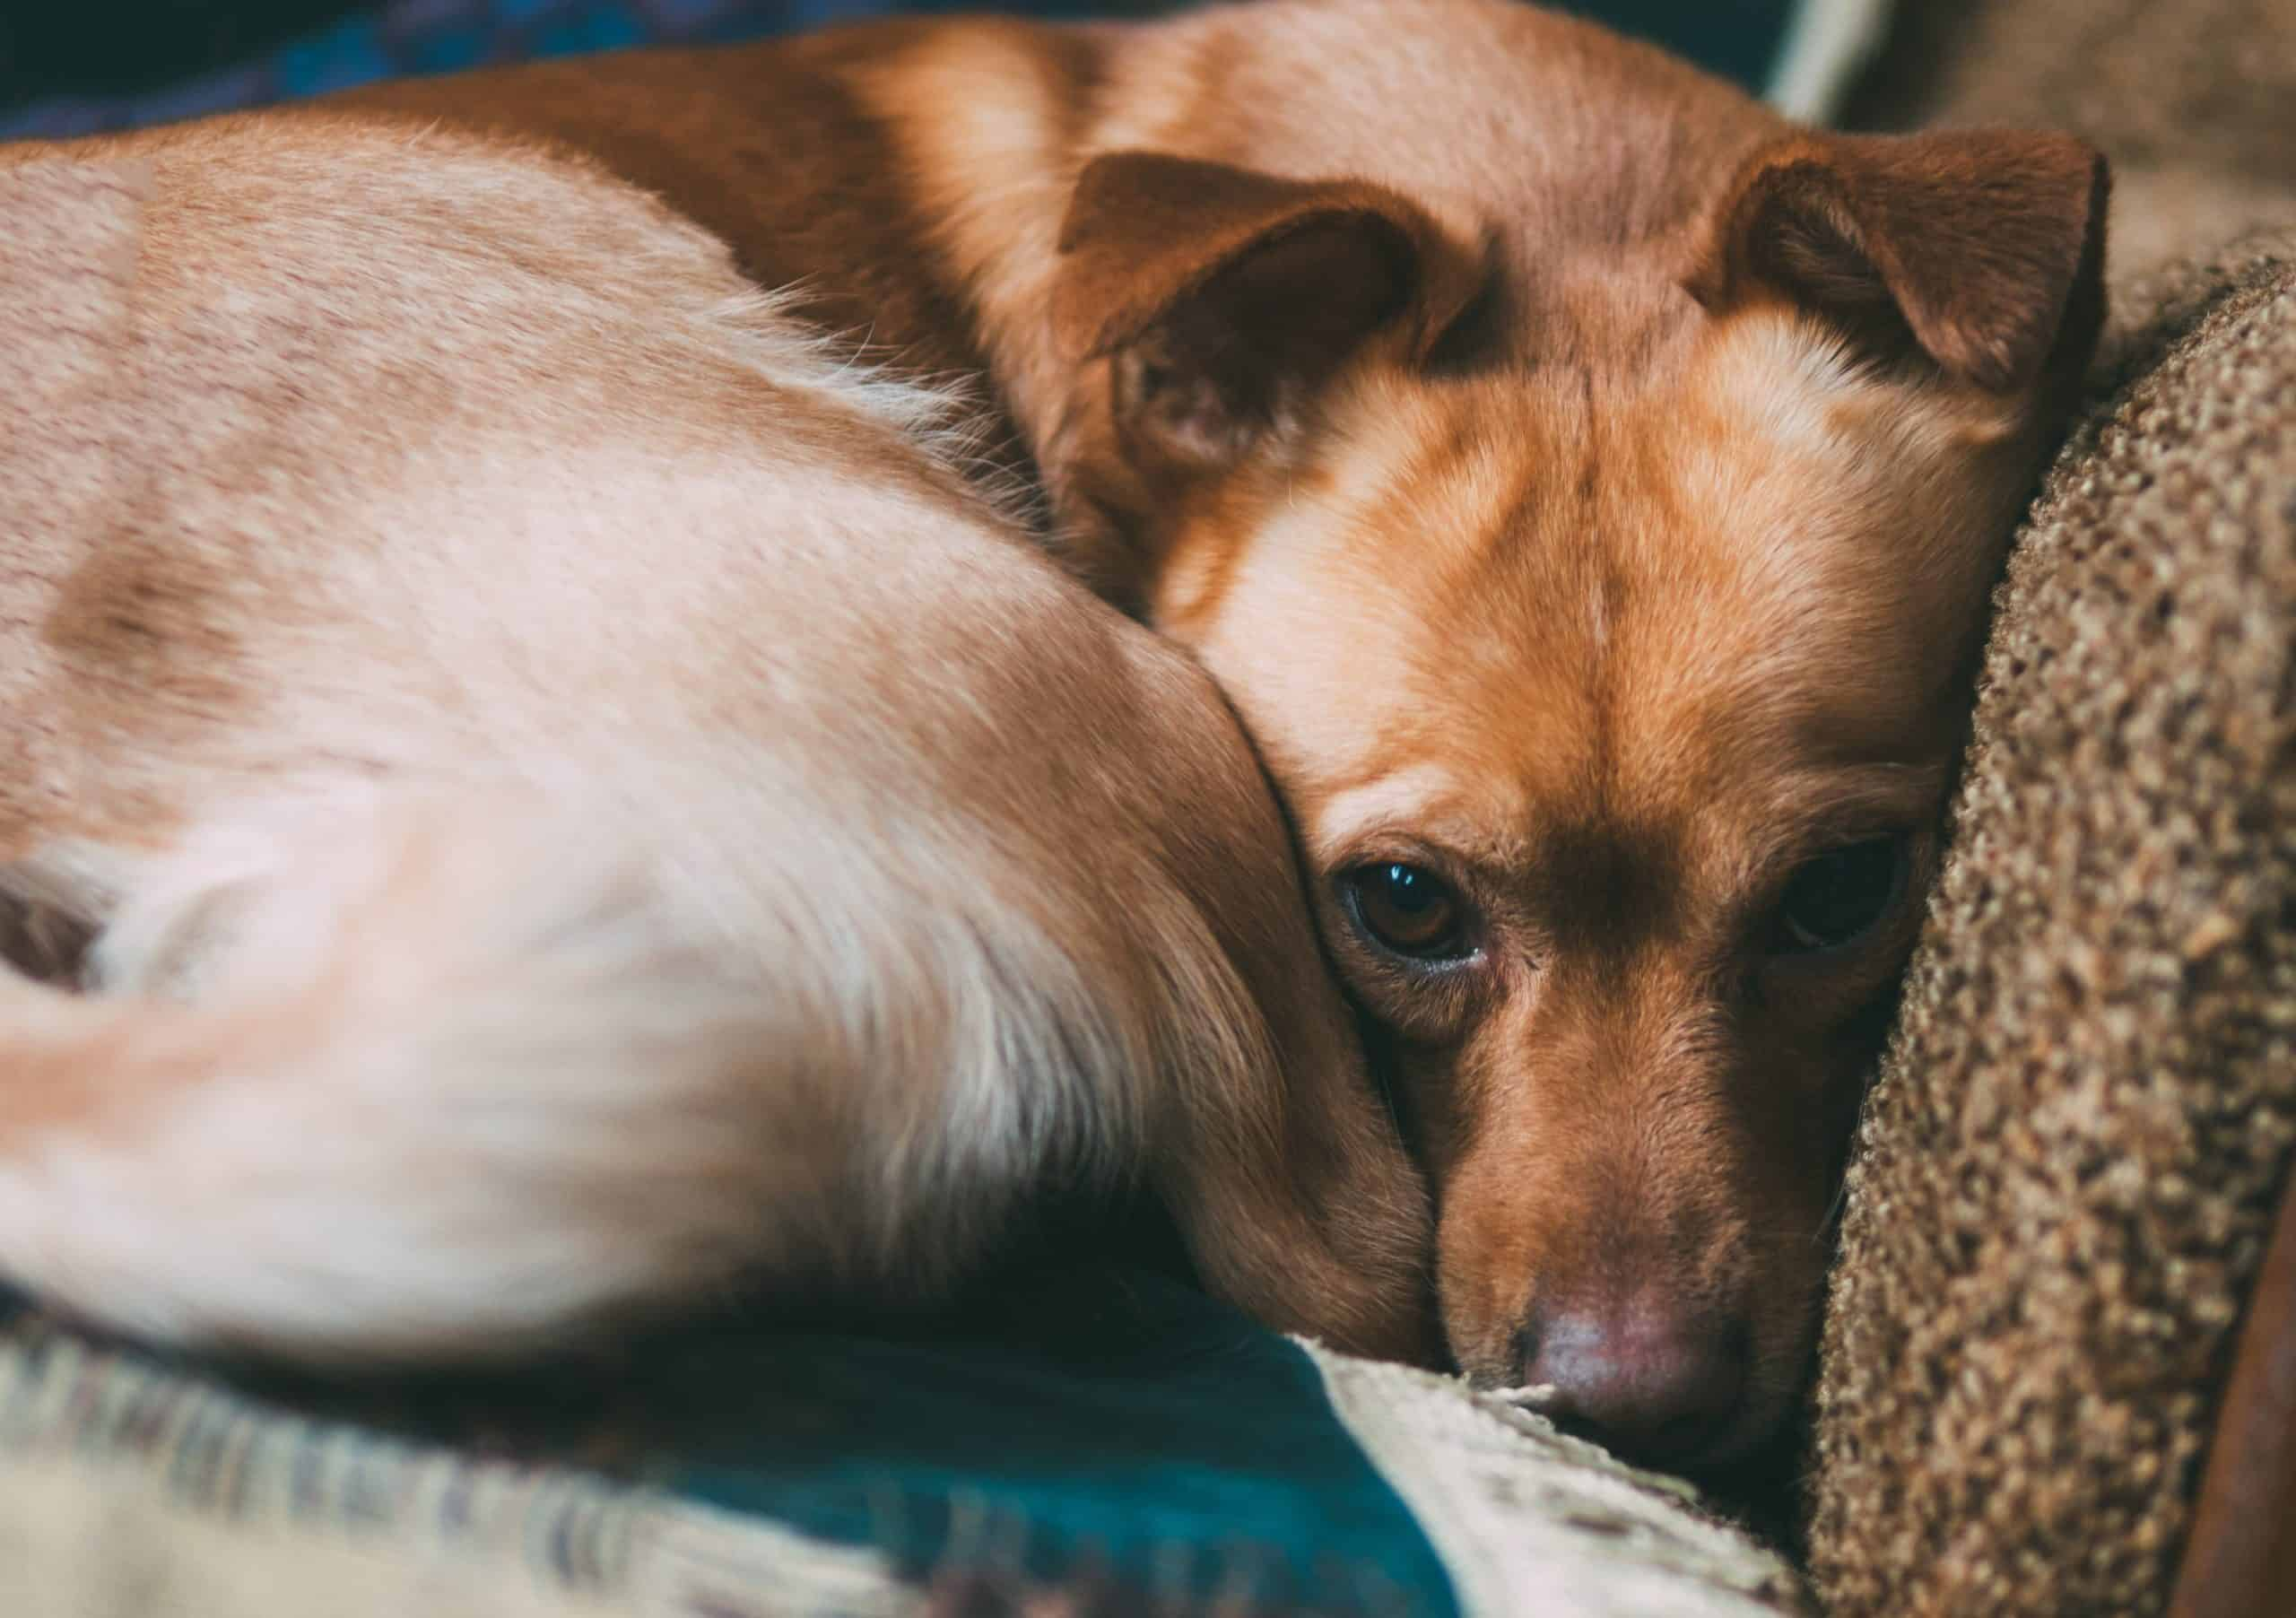 Nervous dog curled up on couch. Excessive yawning might seem like a sign your dog is sleepy but can be a warning sign of anxiety.